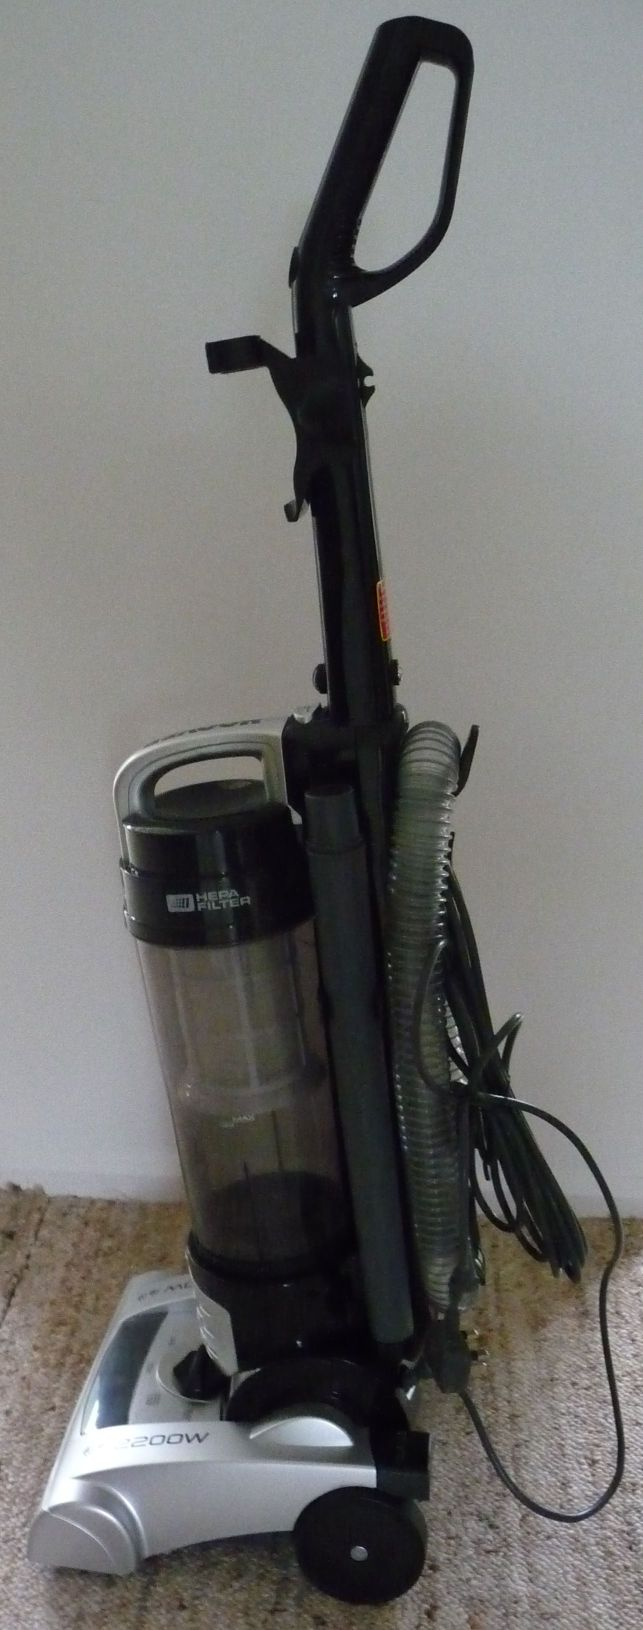 Boxed Hoover Br2205 Breeze Upright Bagless Vacuum